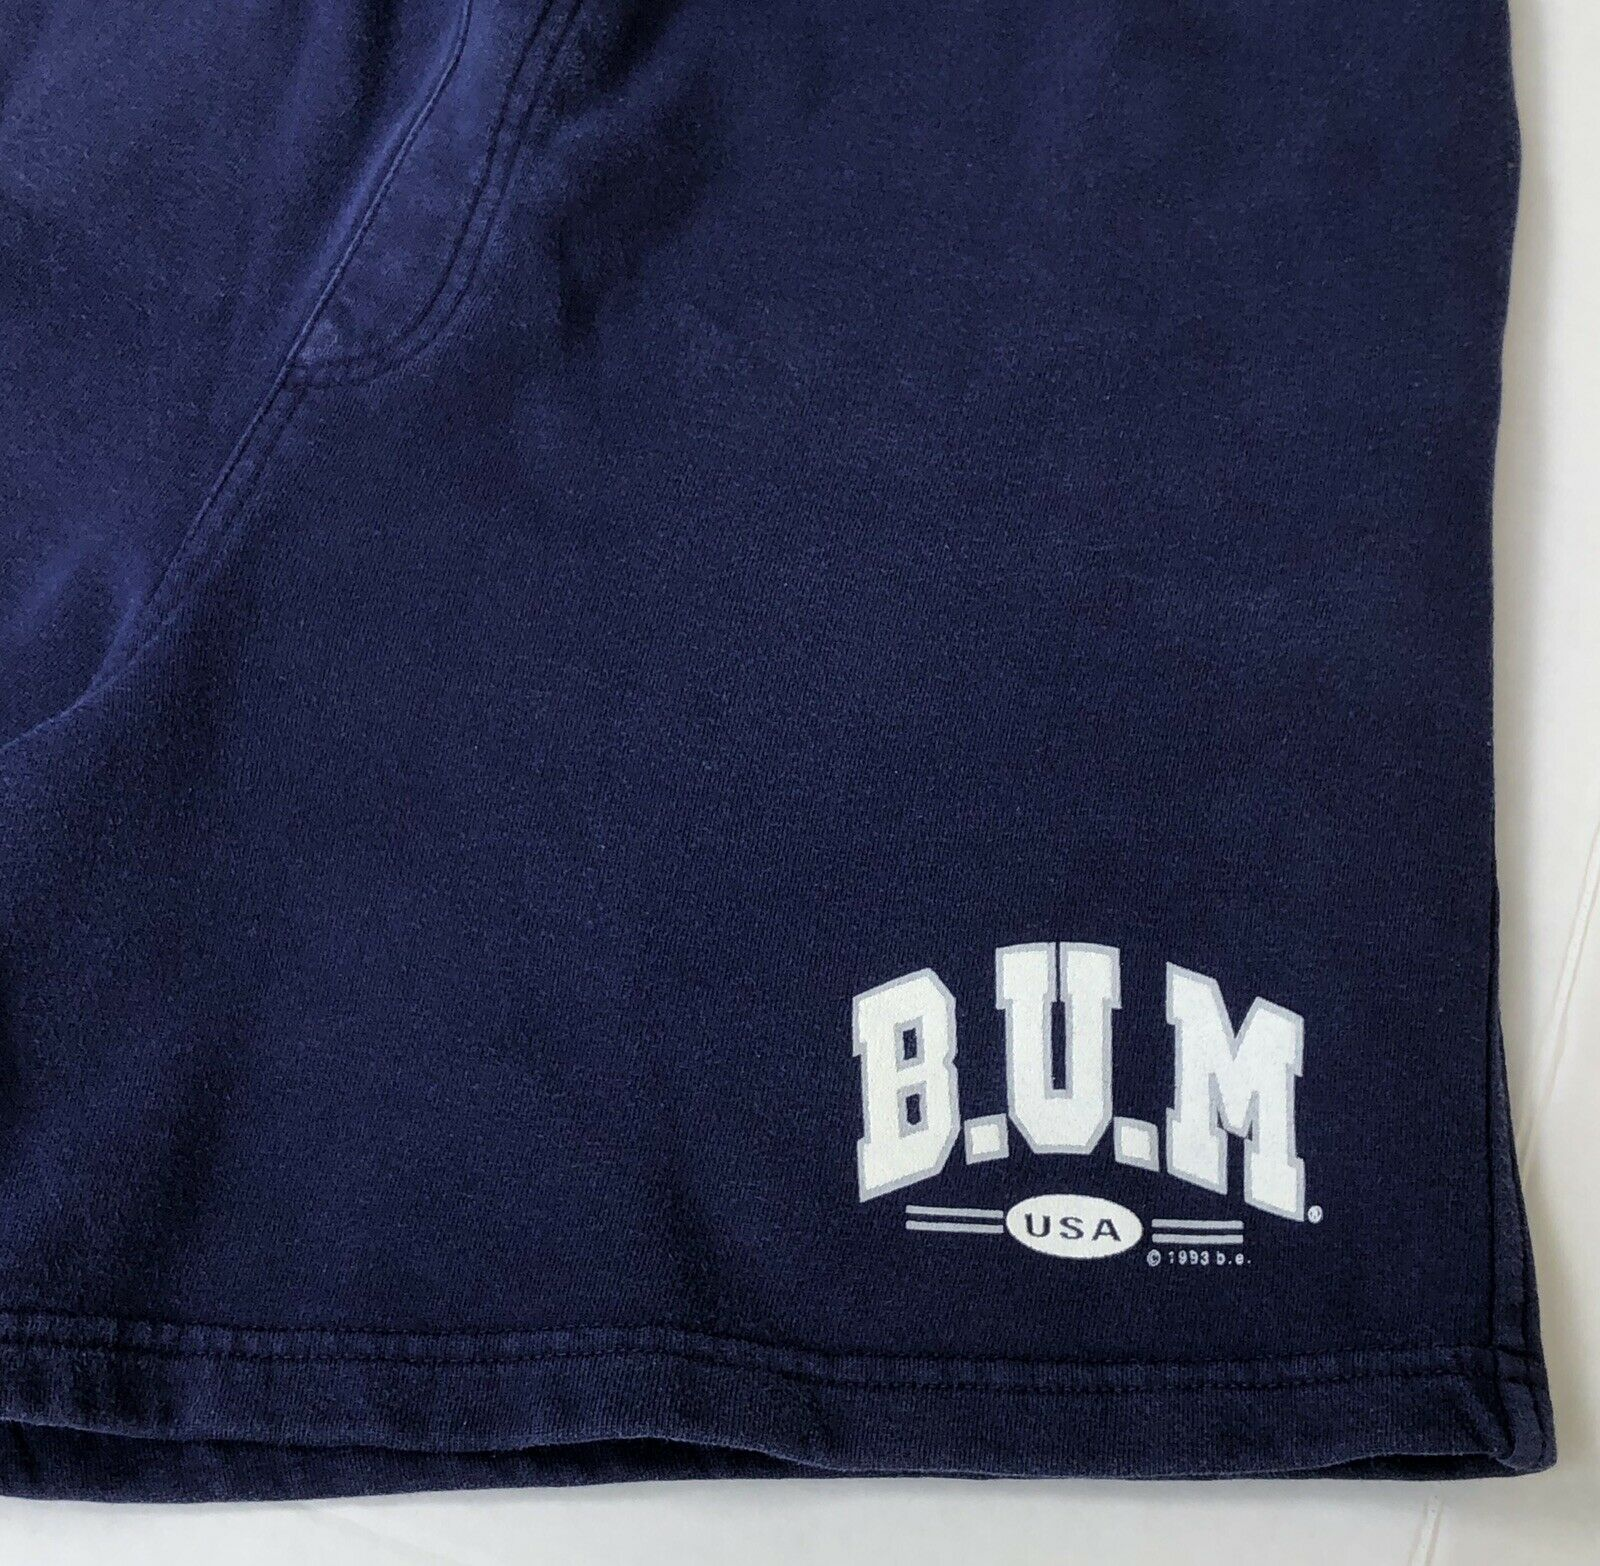 Vintage 90s B.U.M. Equipment Shorts navy blue Swe… - image 5